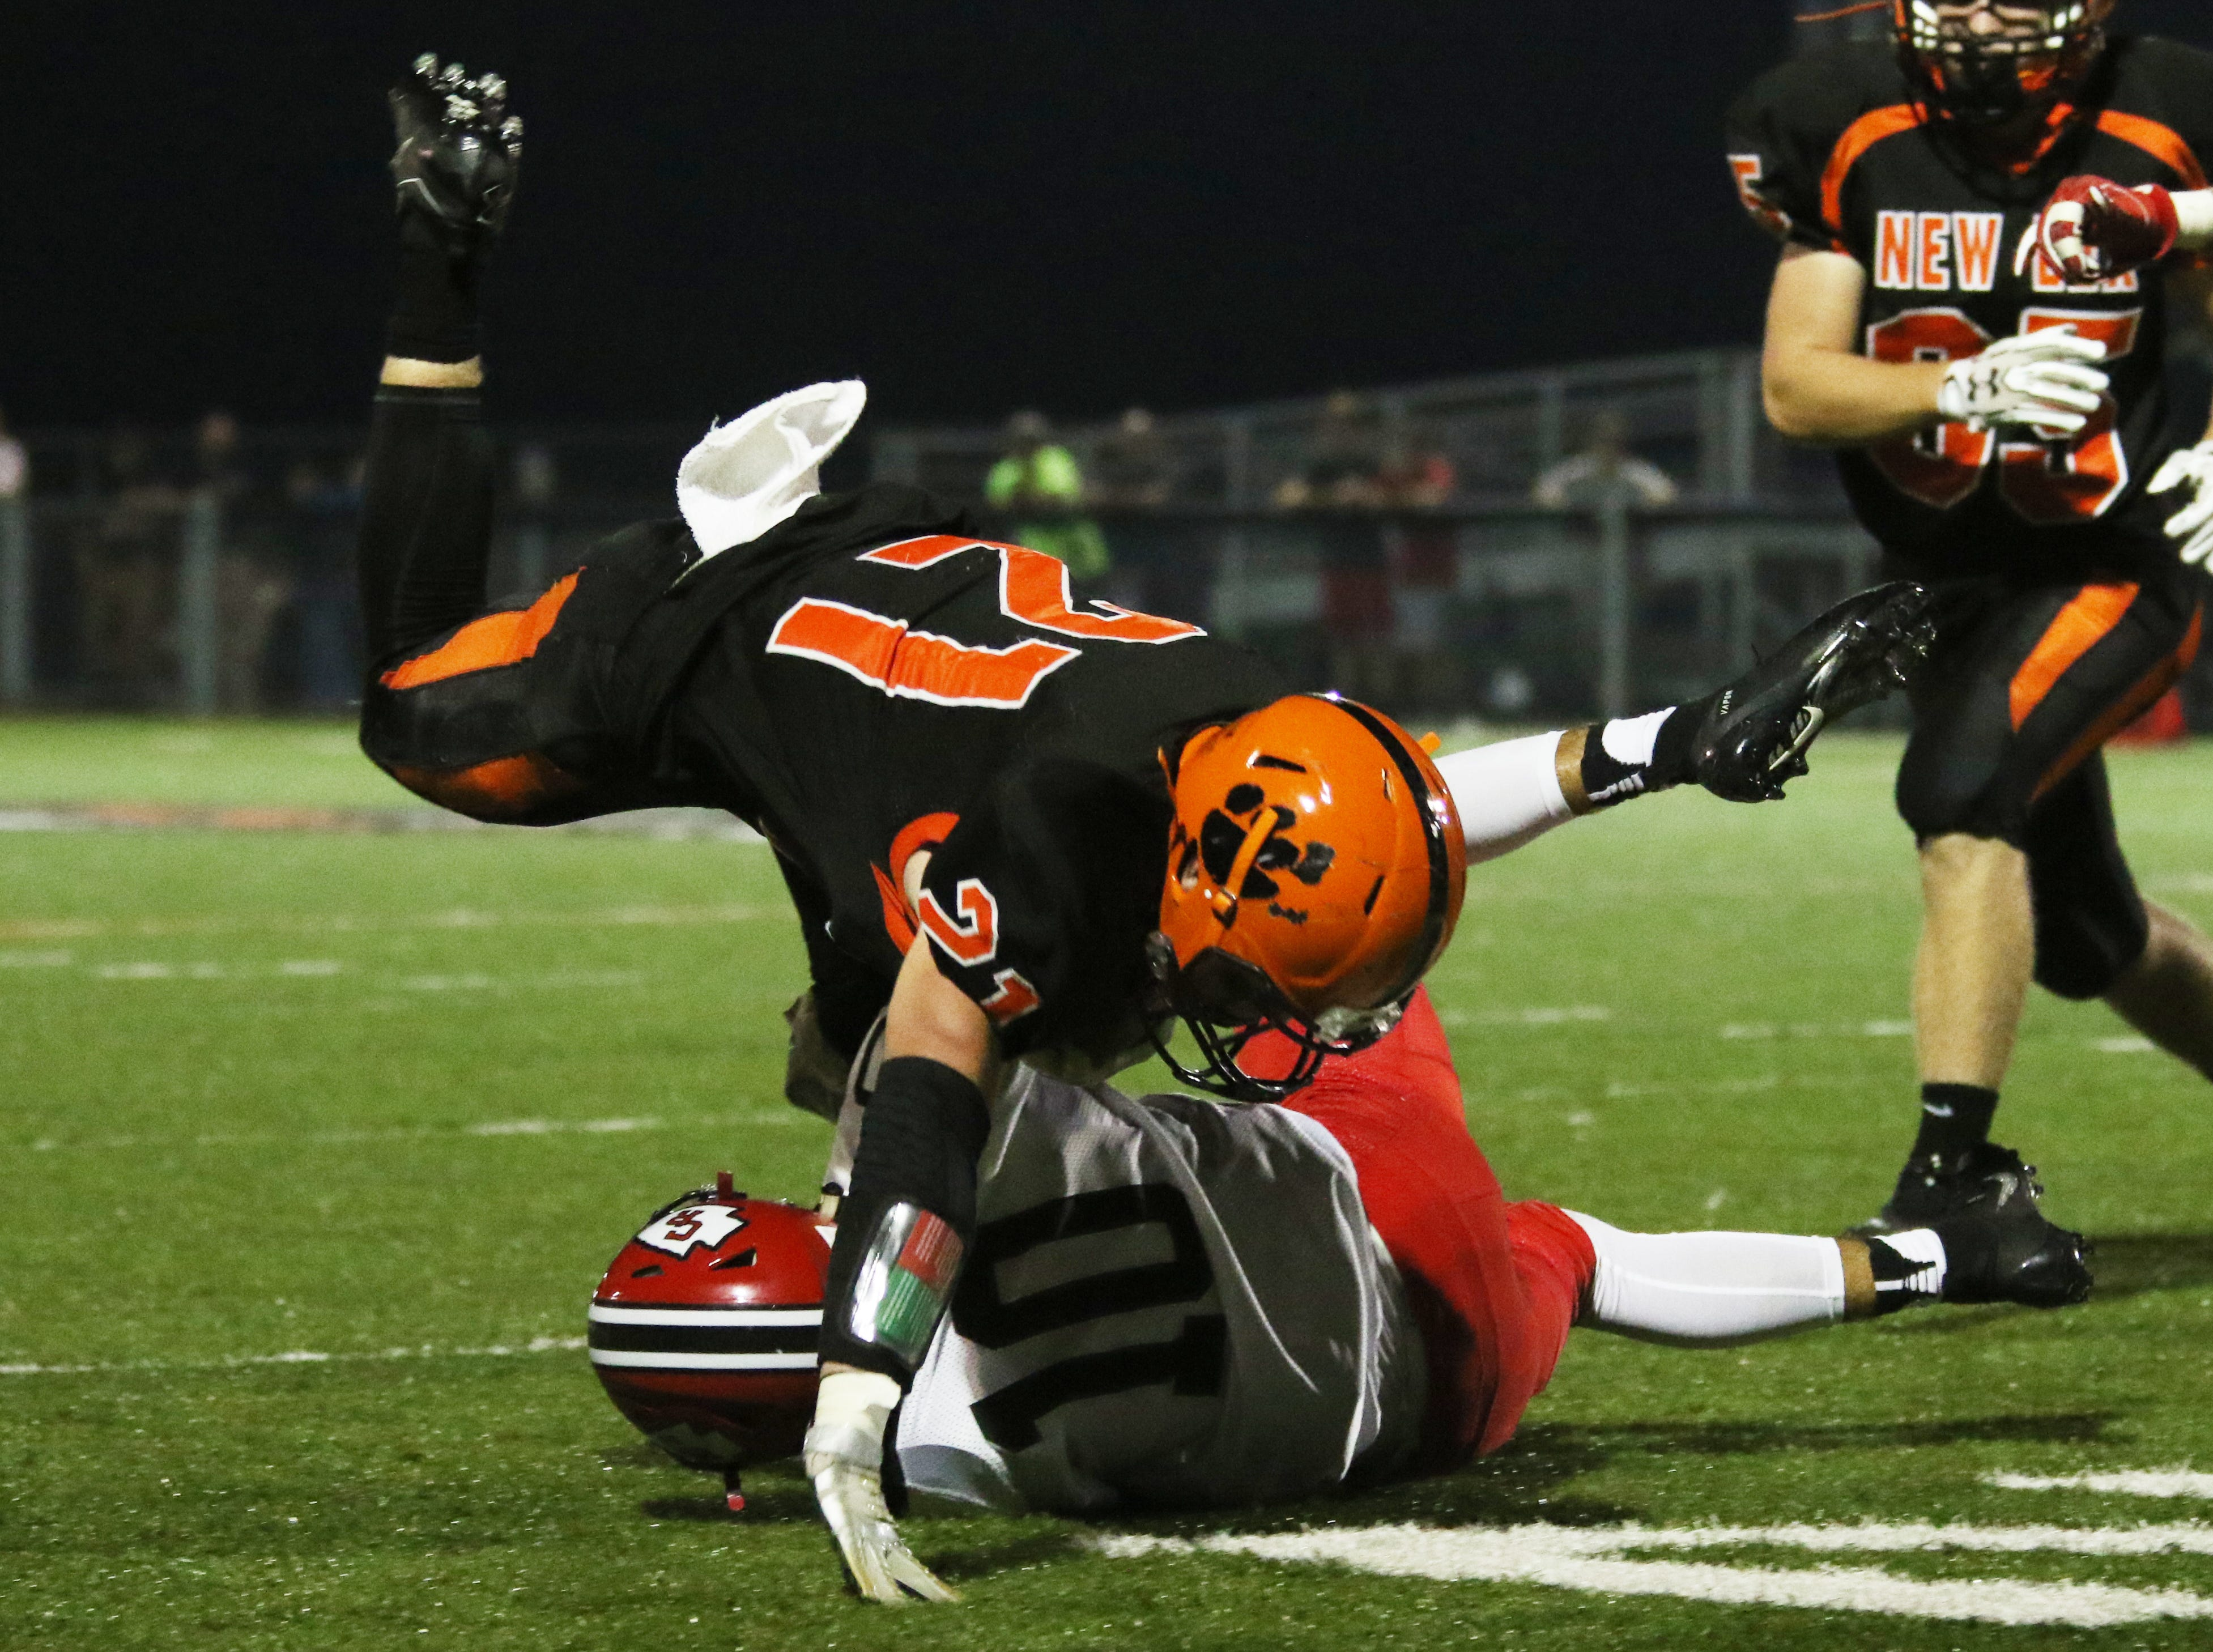 New Lexington's Christian Vance is upended by Coshocton's Nathan Fauver.